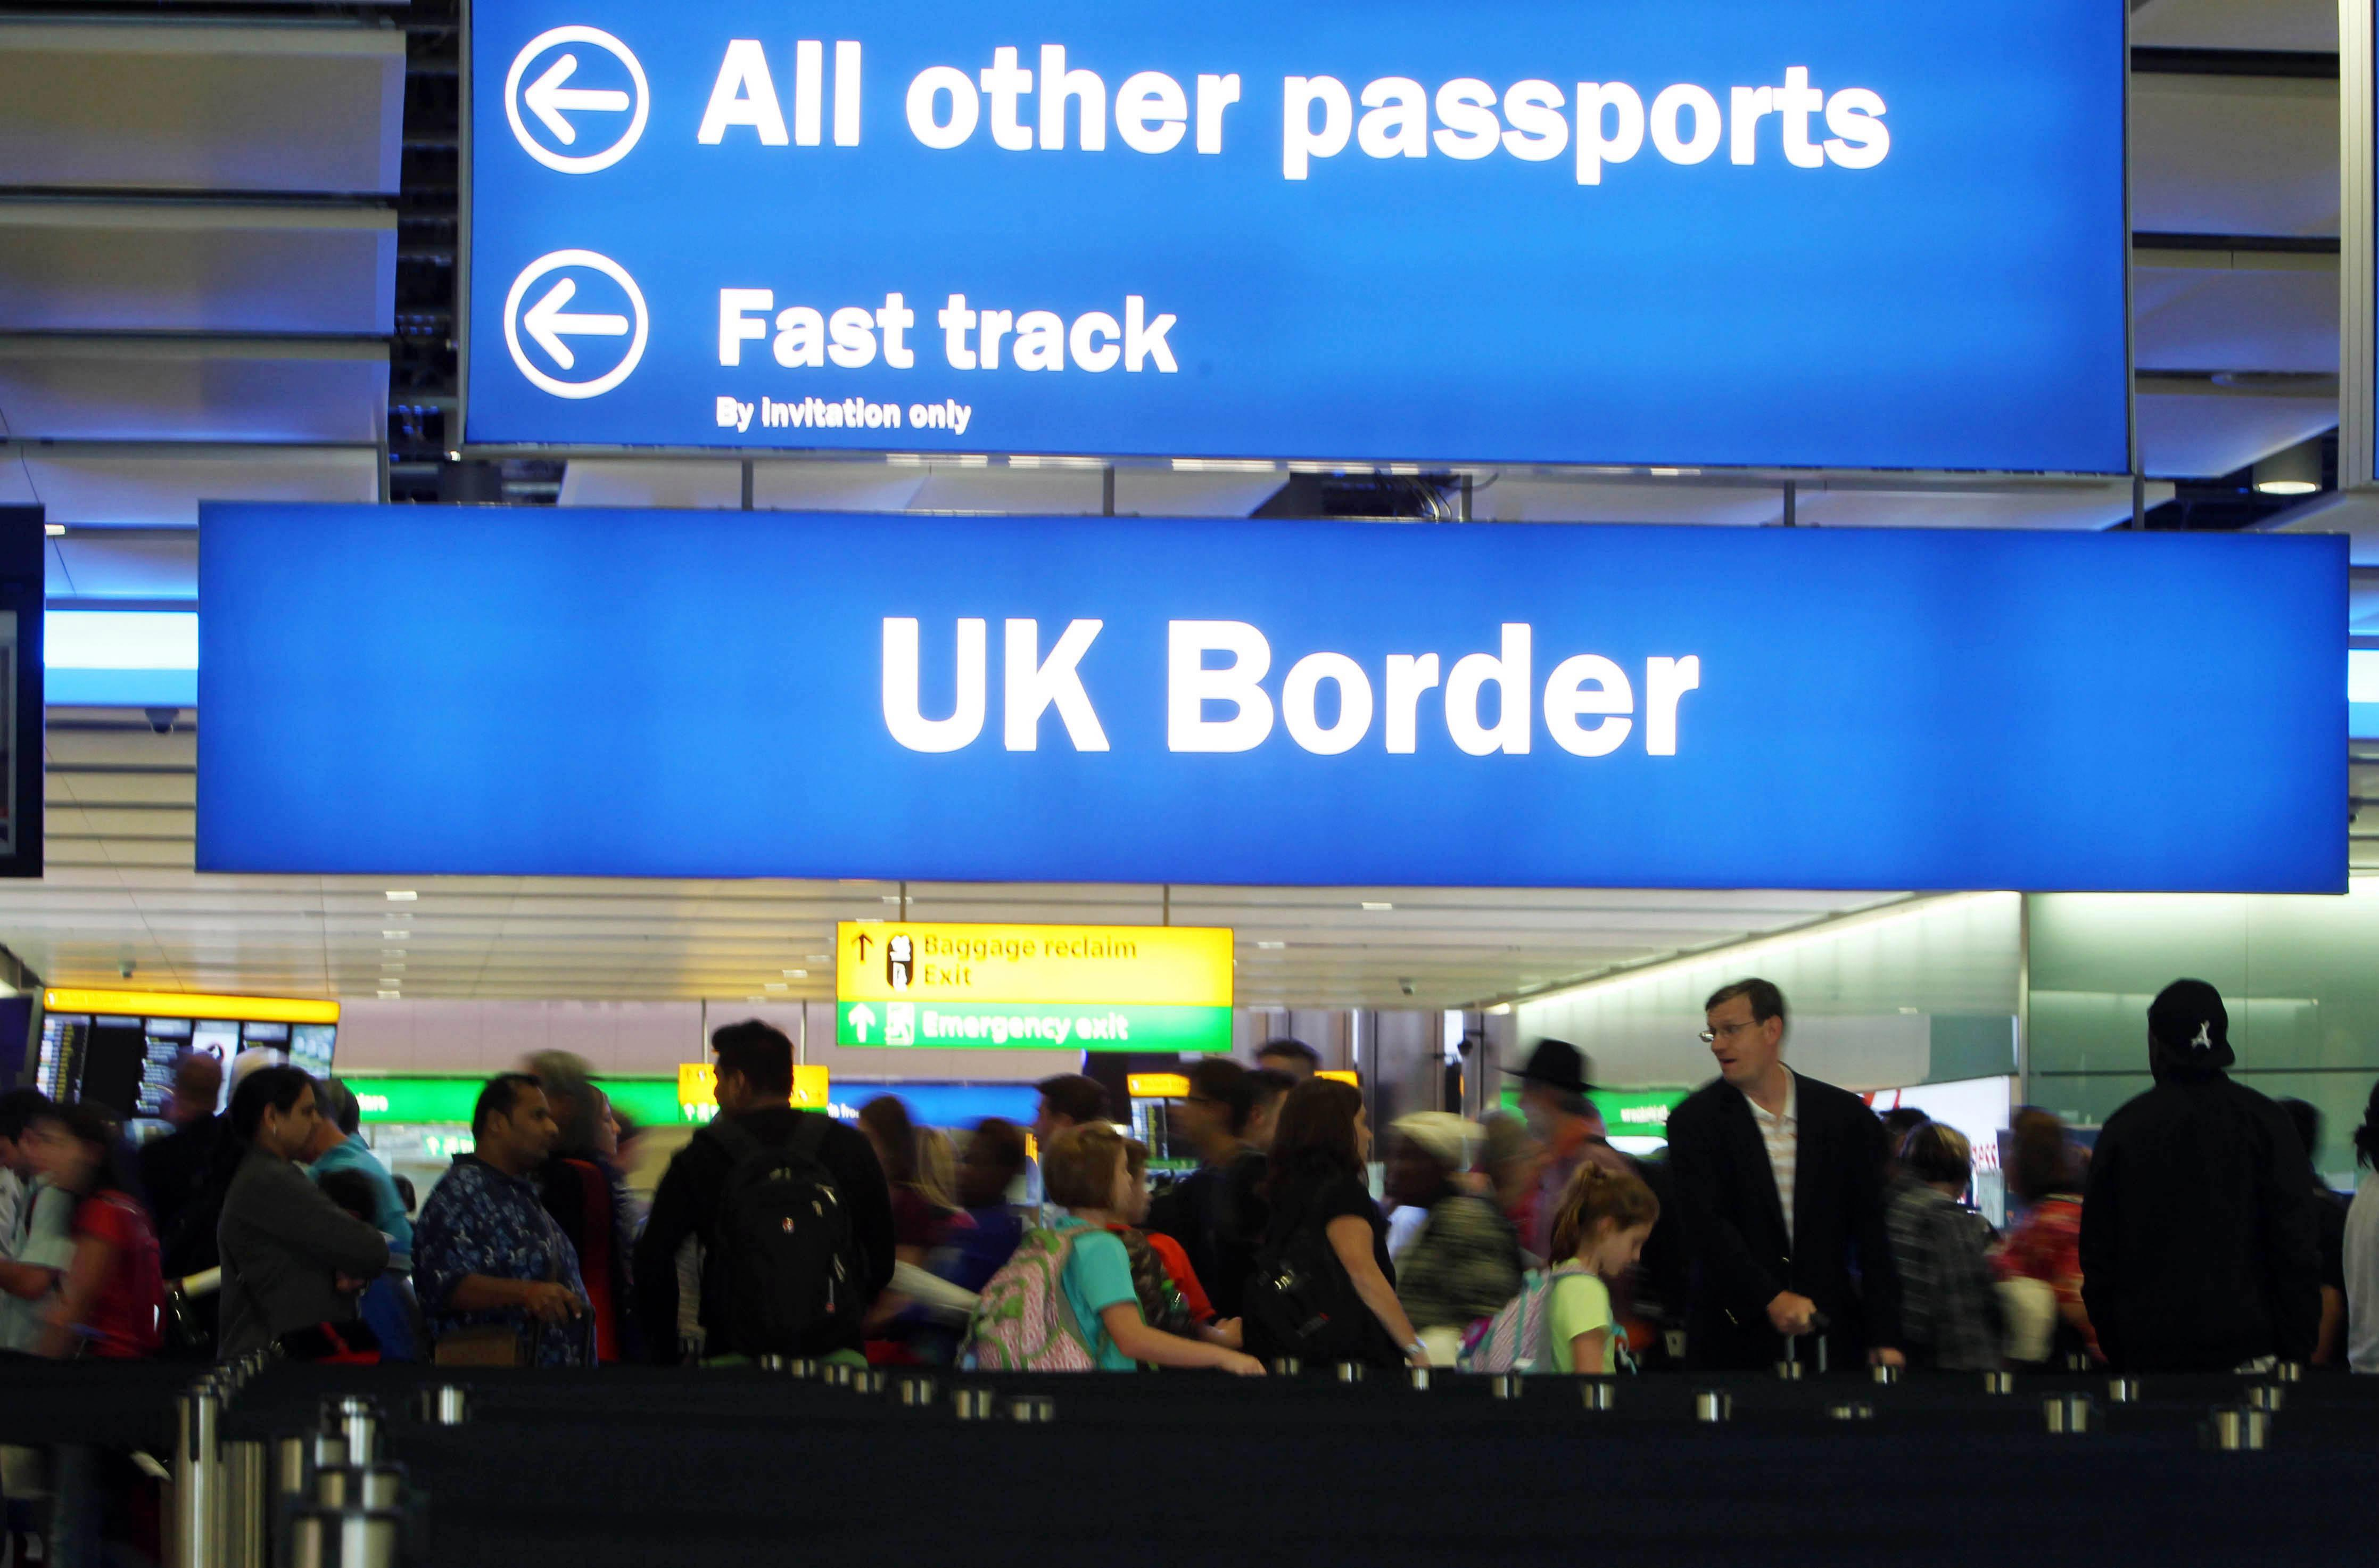 Airlines to be hit with £50,000 fines for allowing hundreds of passengers every year to bypass border control and enter the UK without clearance